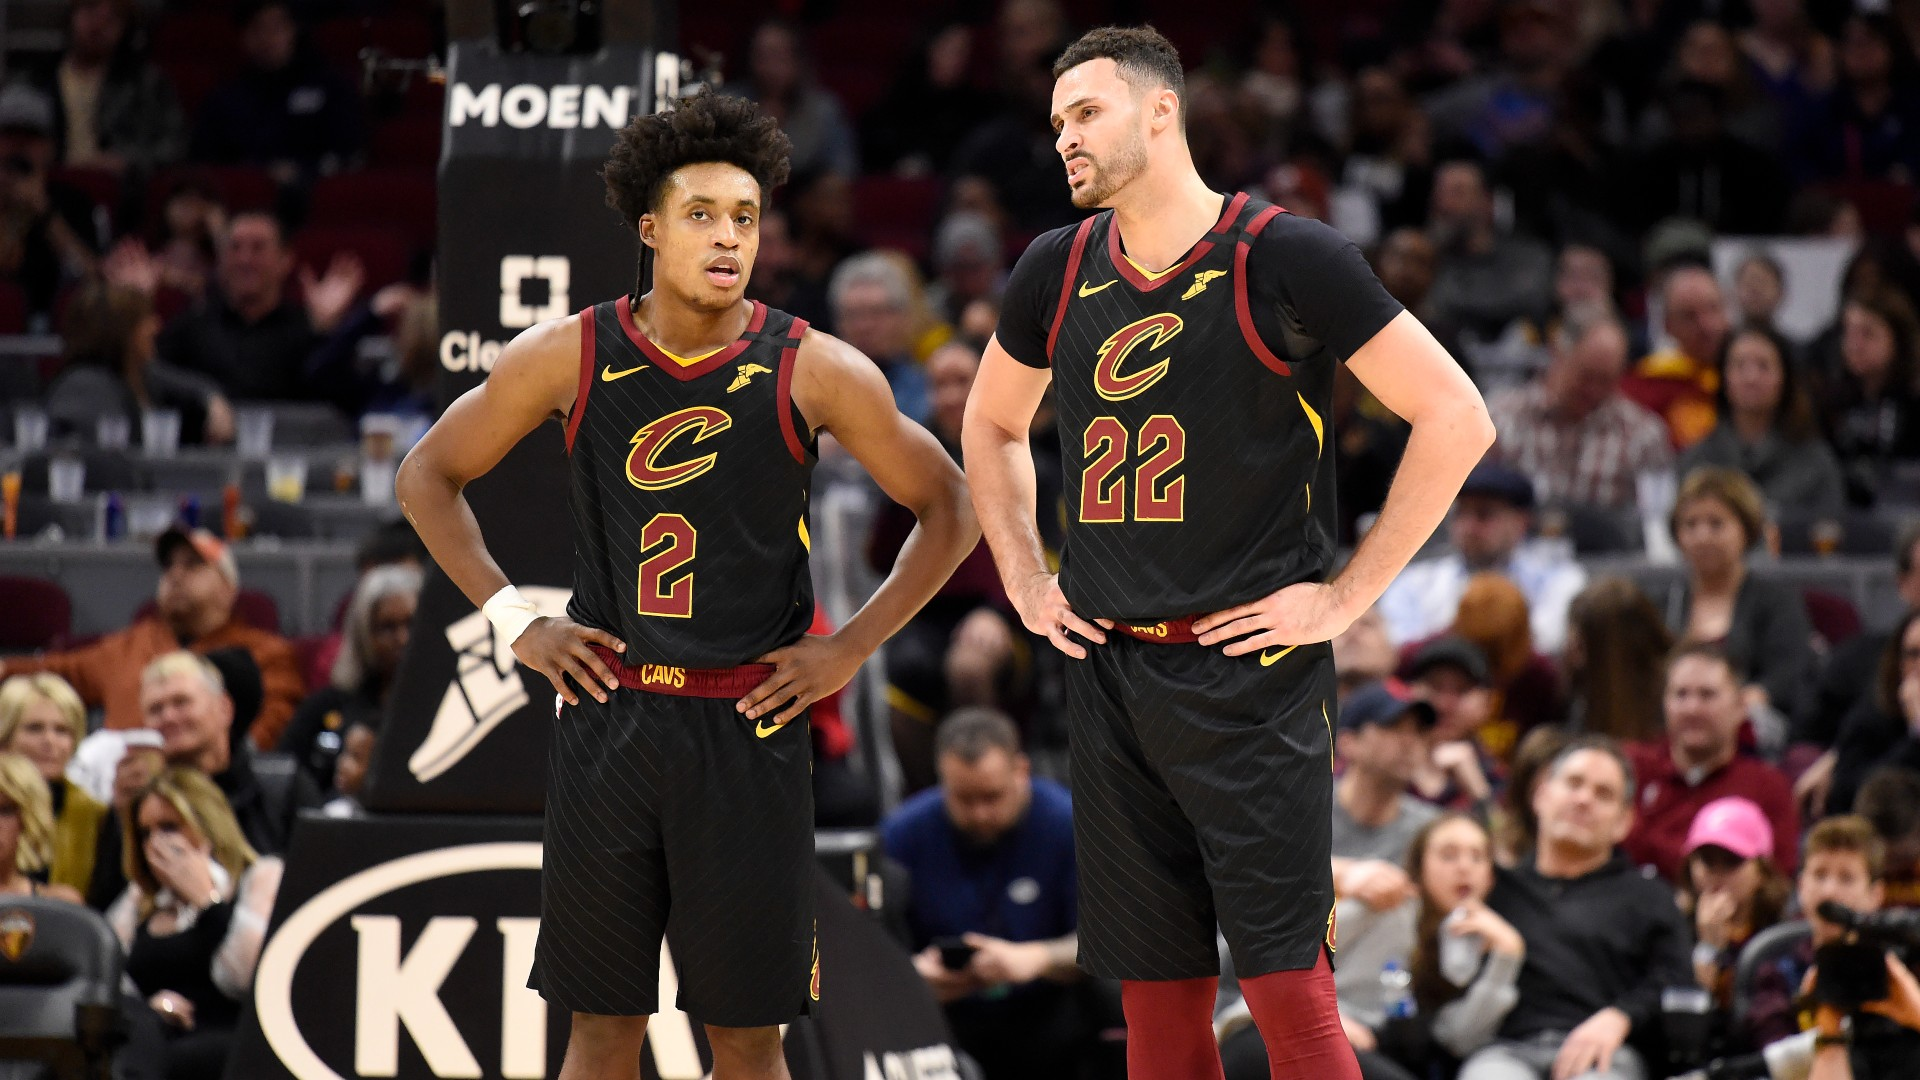 Larry Nance Jr. defends former Cavs teammate Collin Sexton, calls anonymous scout 'a moron'